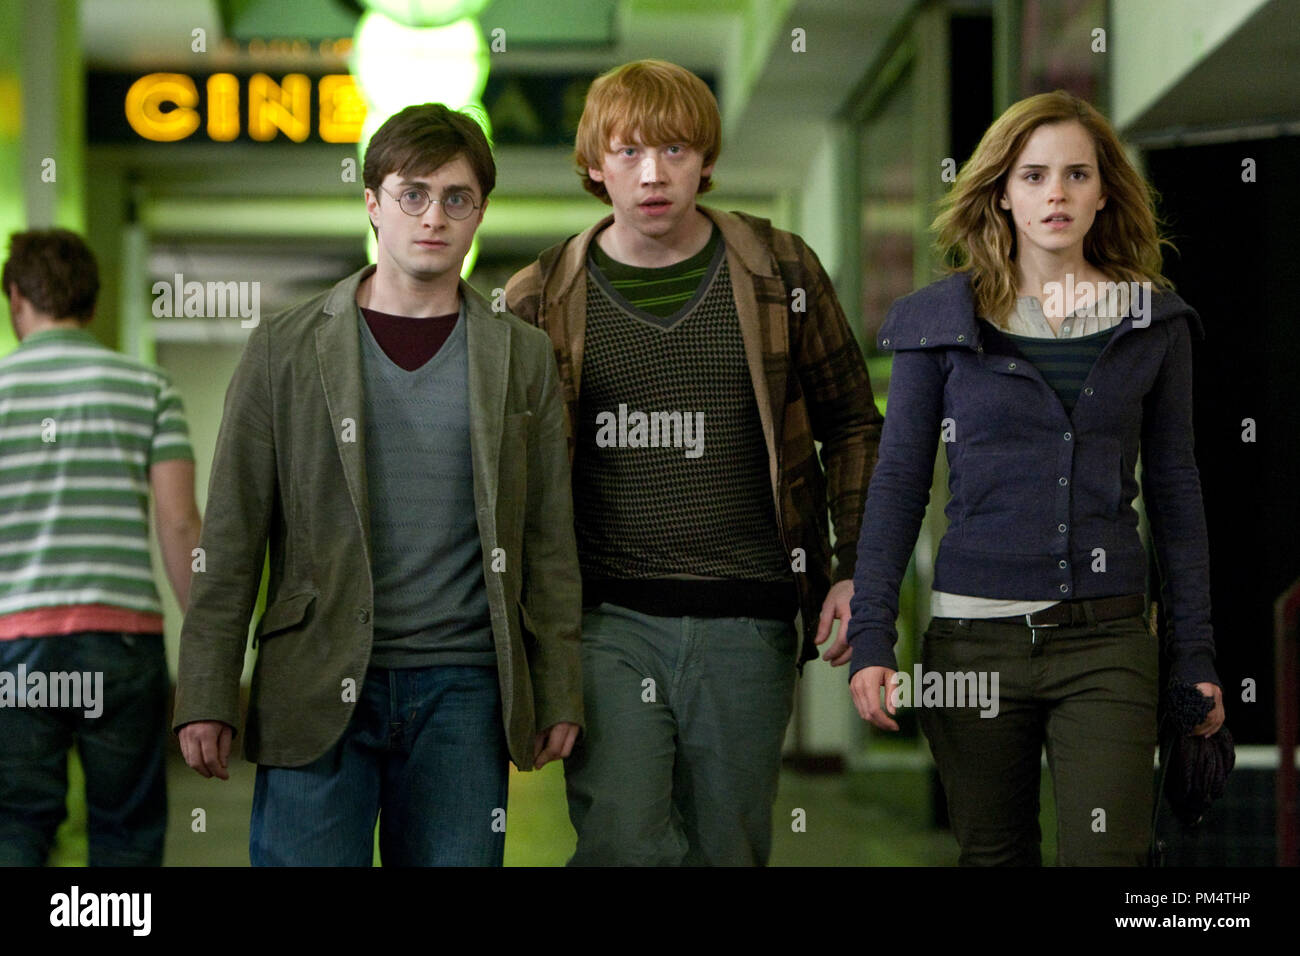 (L-r) DANIEL RADCLIFFE as Harry Potter, RUPERT GRINT as Ron Weasley and EMMA WATSON as Hermione Granger in Warner Bros. PicturesÕ fantasy adventure ÒHARRY POTTER AND THE DEATHLY HALLOWS Ð PART 1,Ó a Warner Bros. Pictures release.    Photo by Jaap Buitendijk - Stock Image